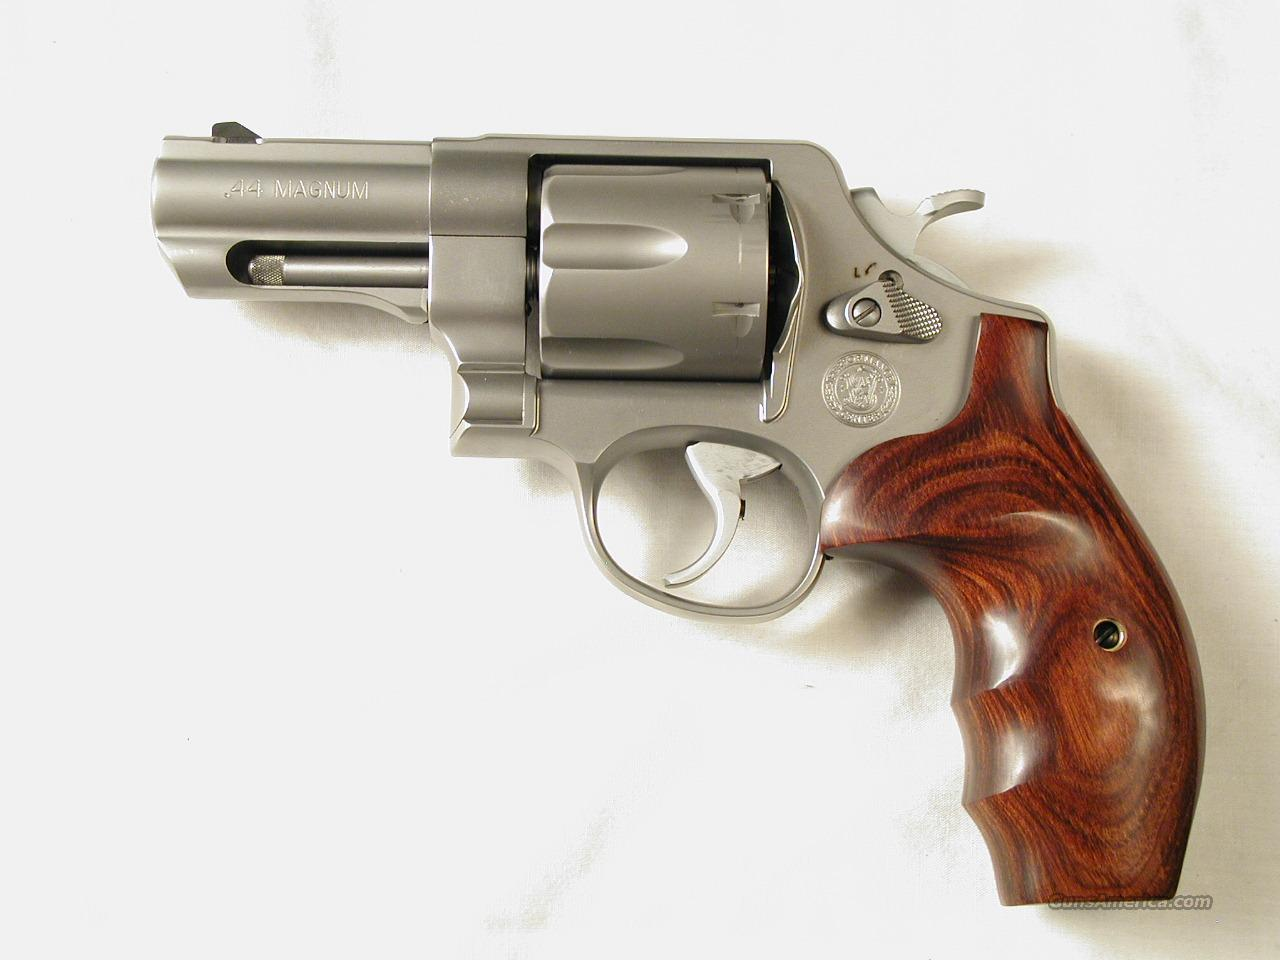 629 CARRY COMP  Guns > Pistols > Smith & Wesson Revolvers > Performance Center